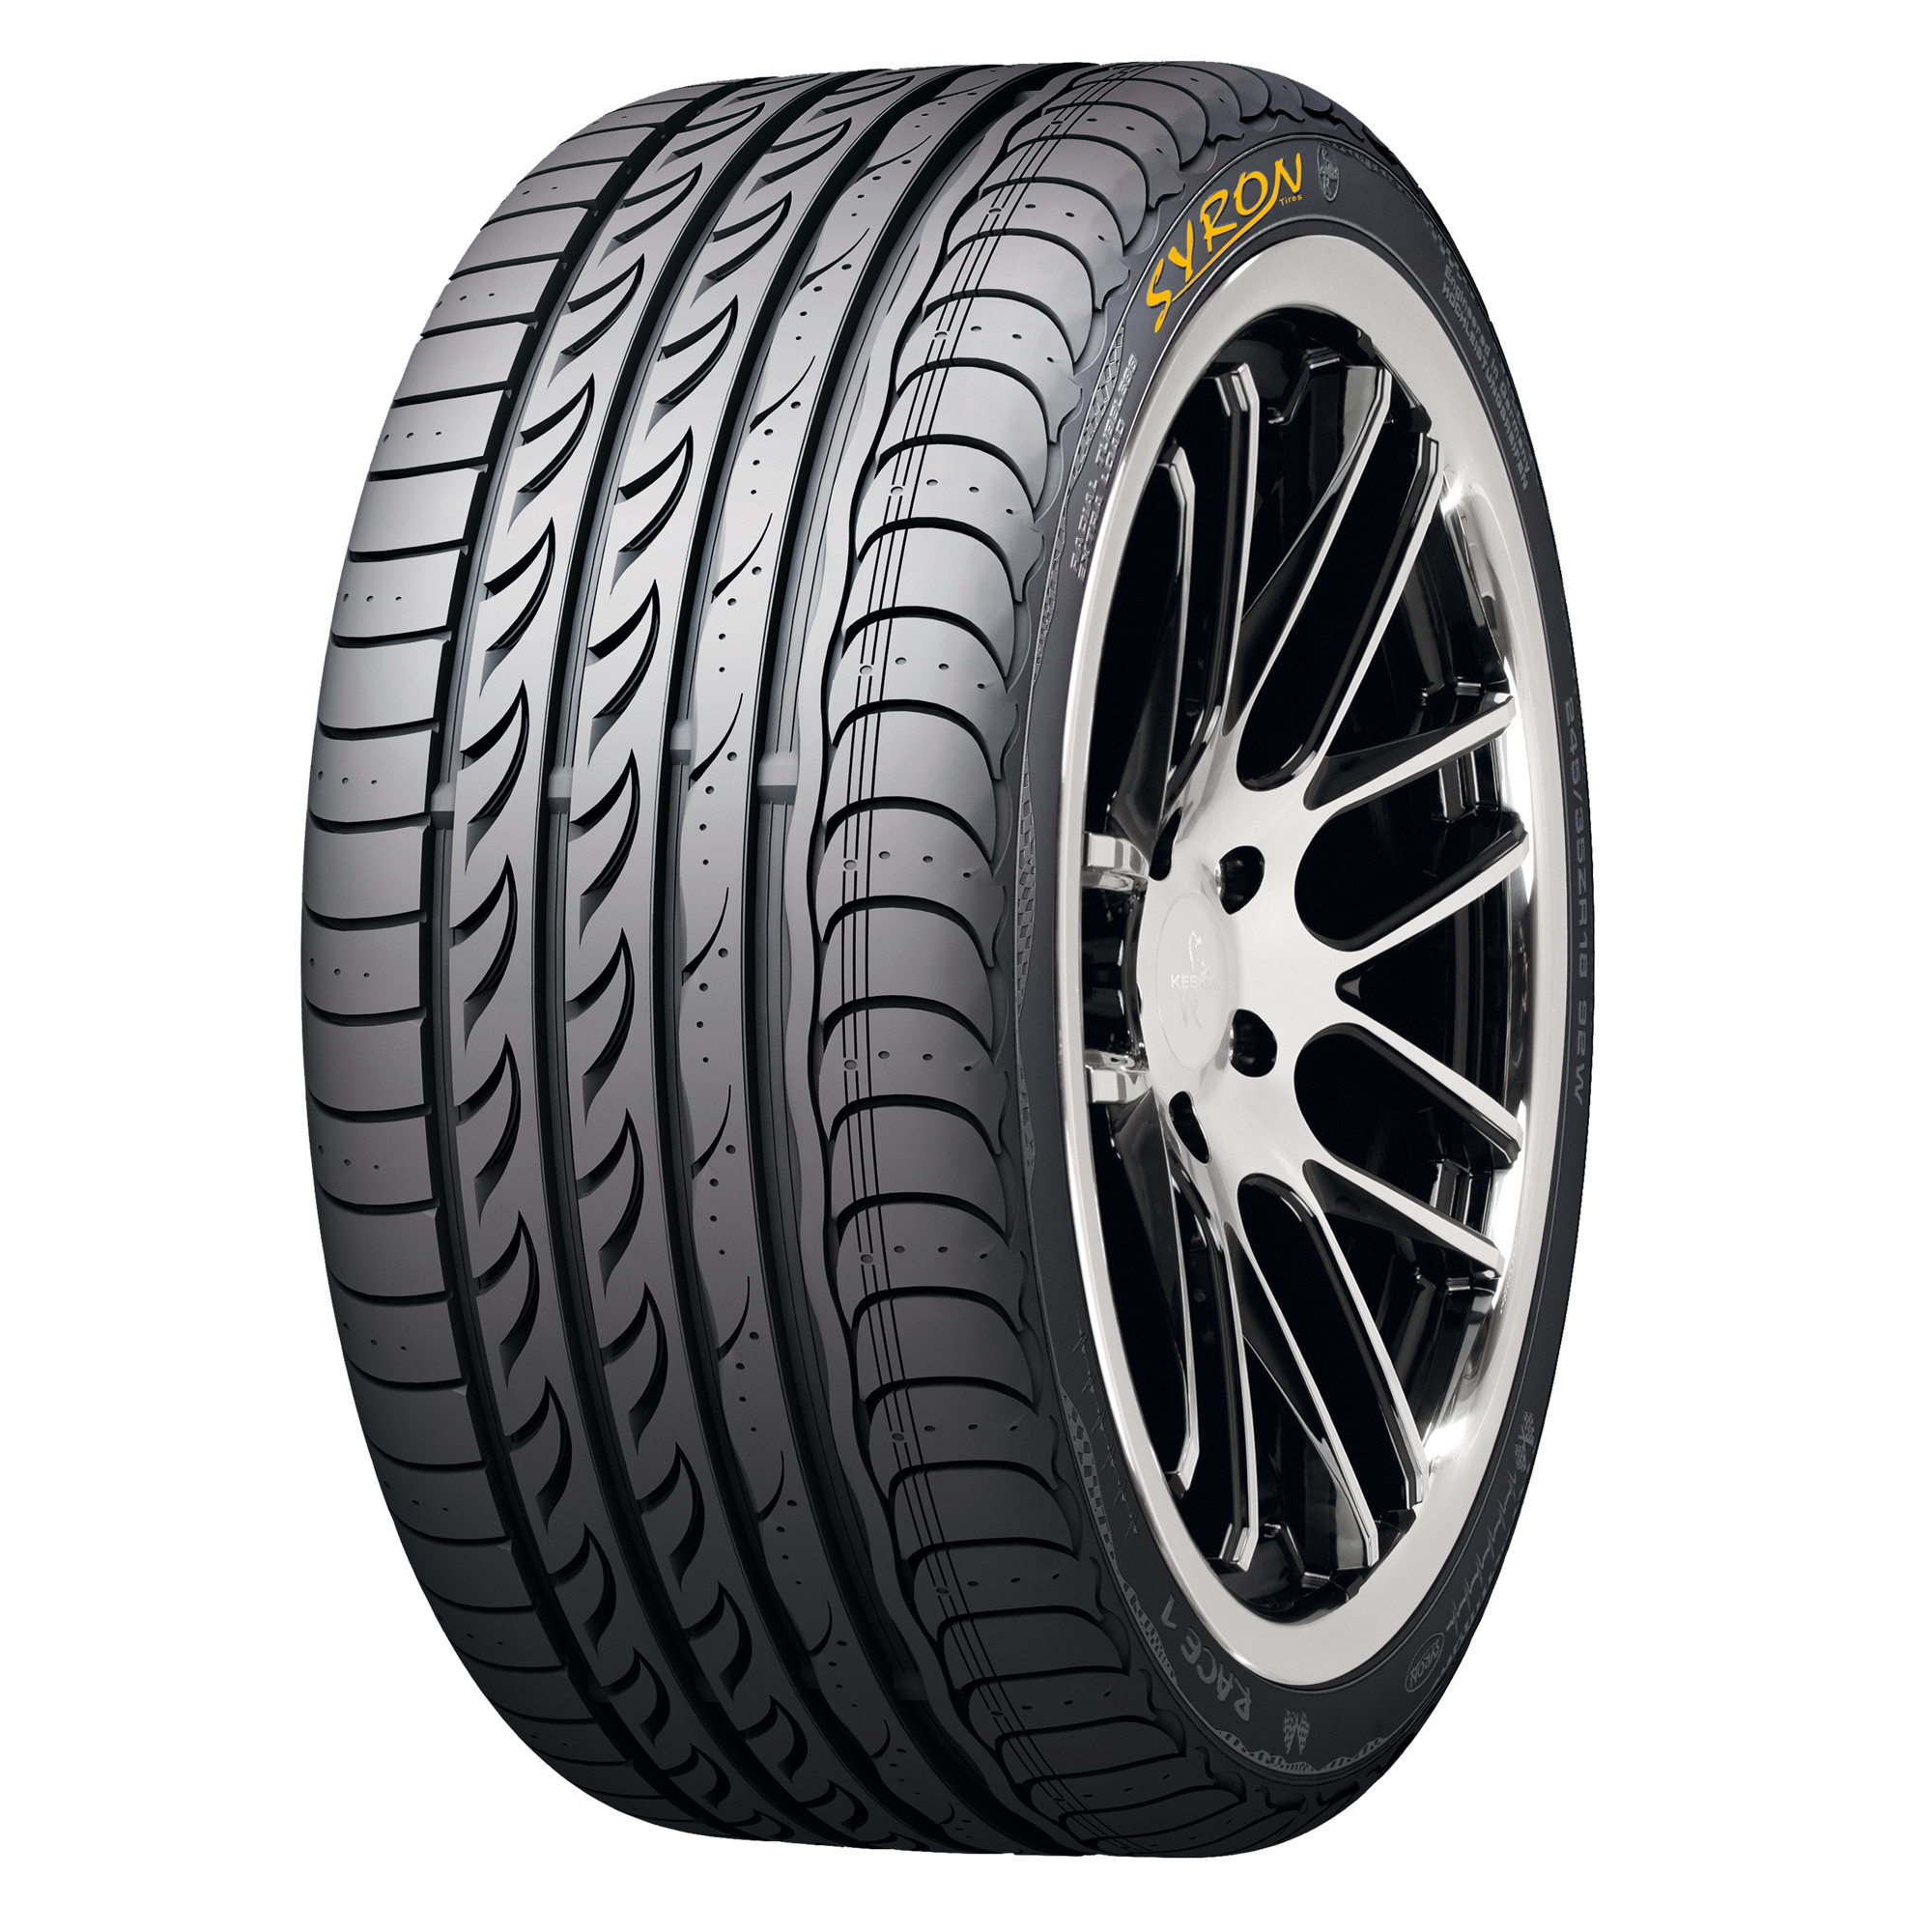 225/55R16 SYRON TIRES RACE1 X 99W XL